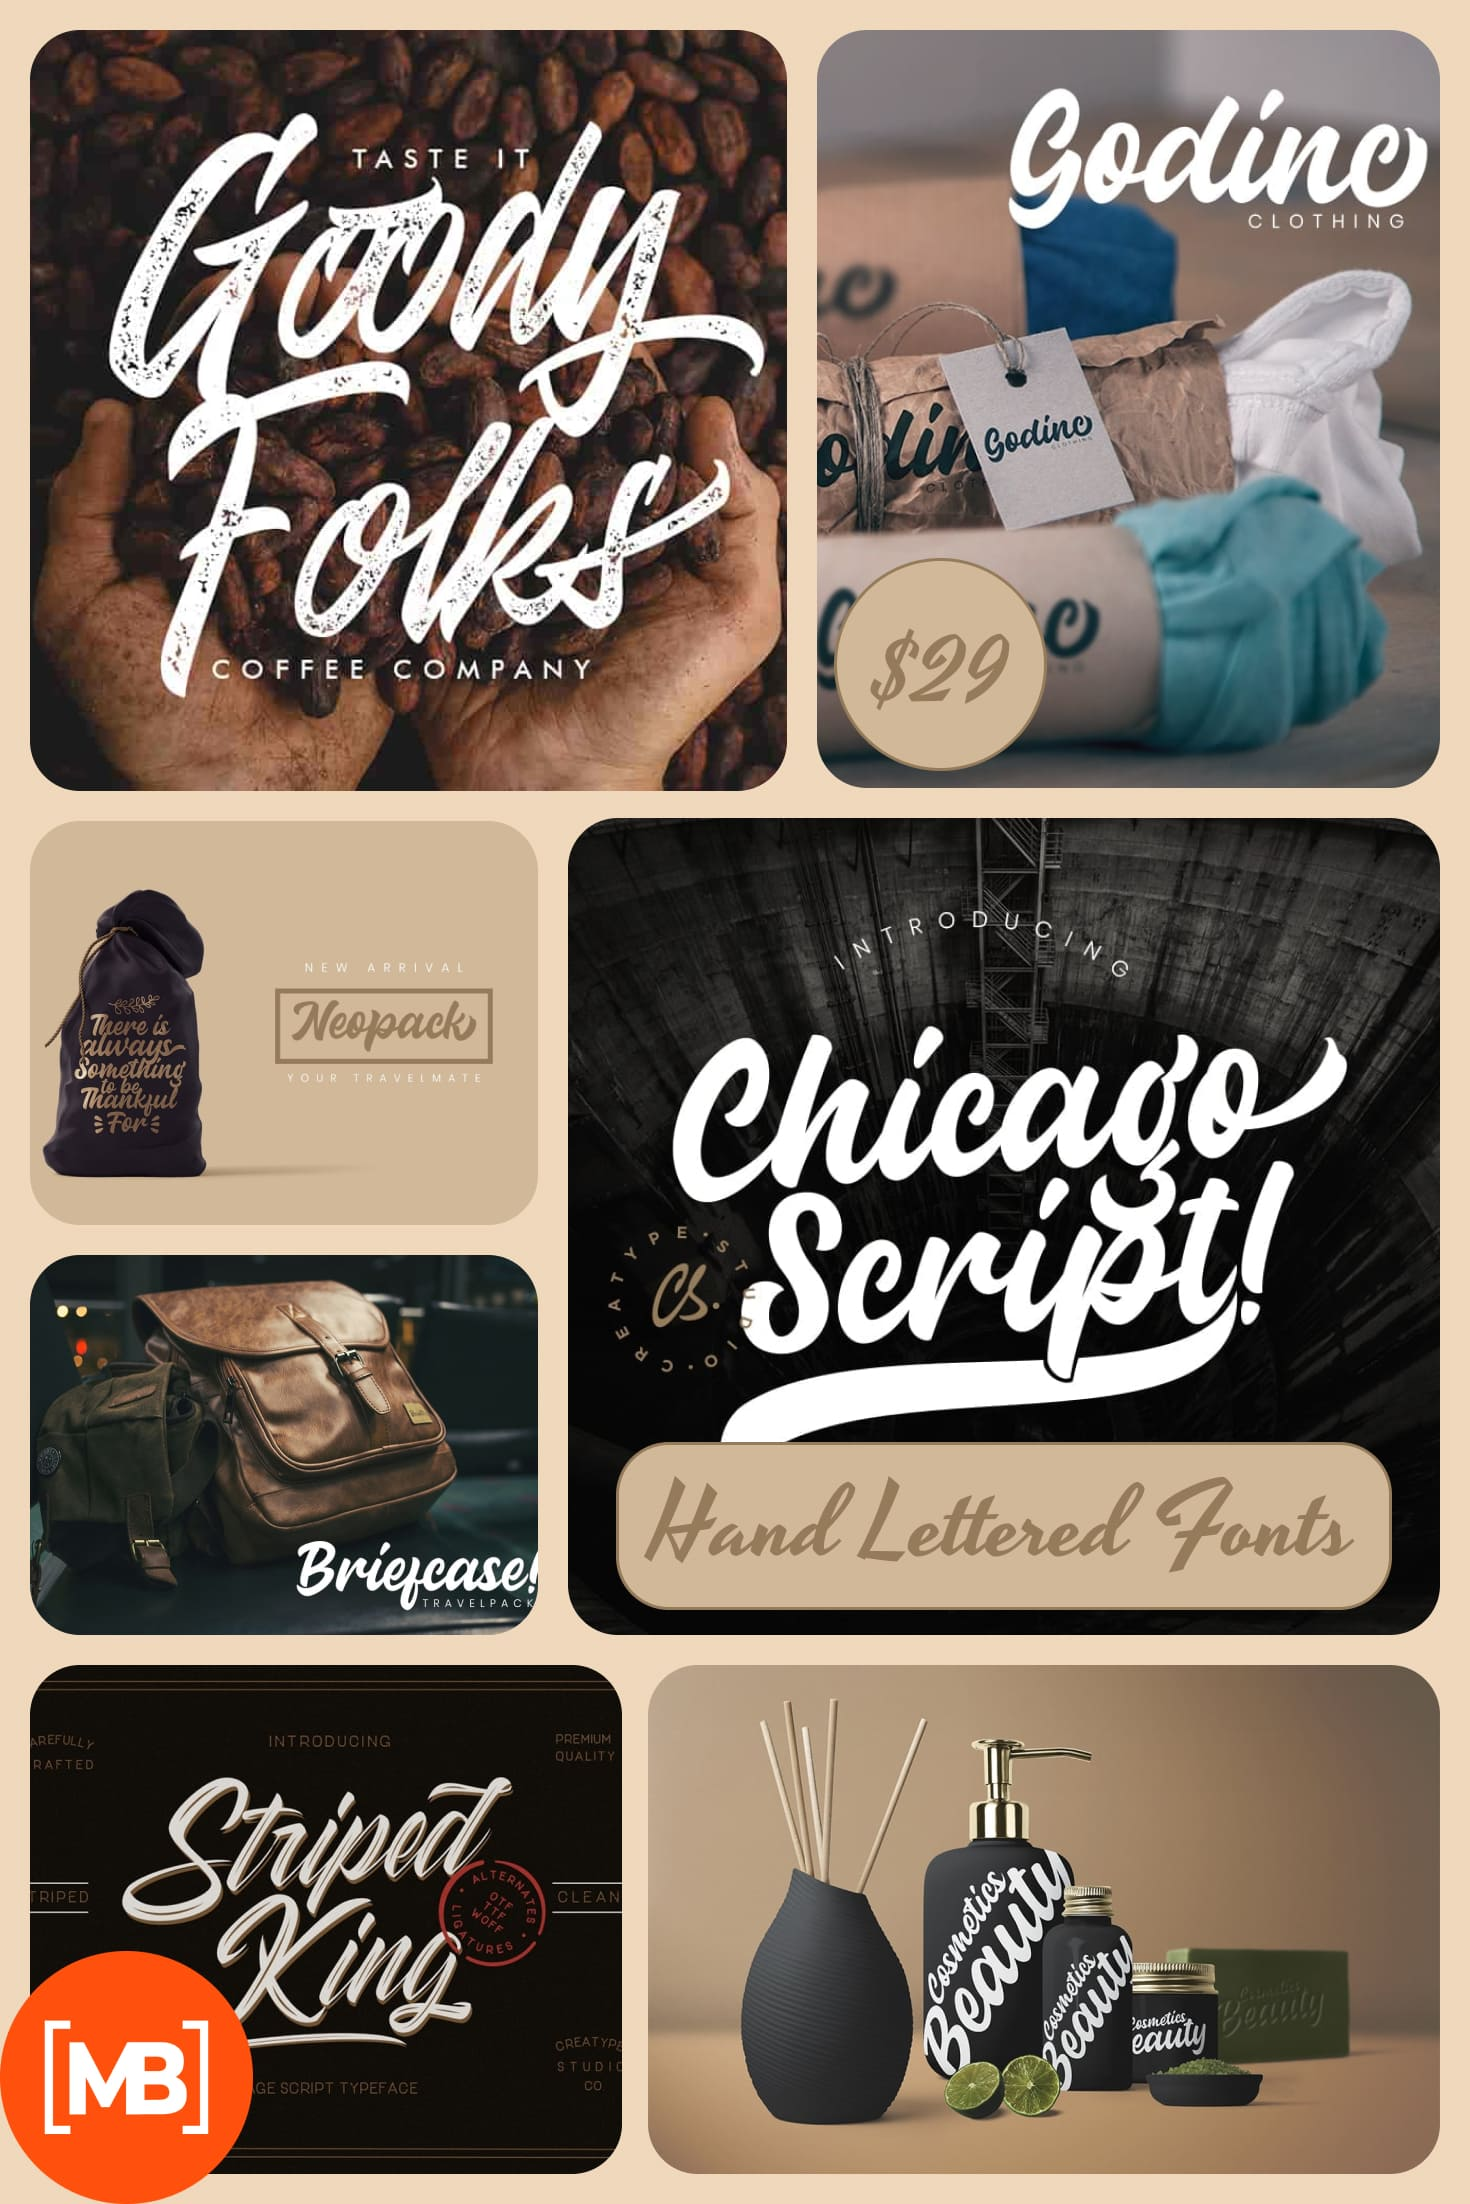 Hand Lettered Fonts - 16 Stunning Fonts - OTF, TTF, WOFF. Just $29!. Collage Image.